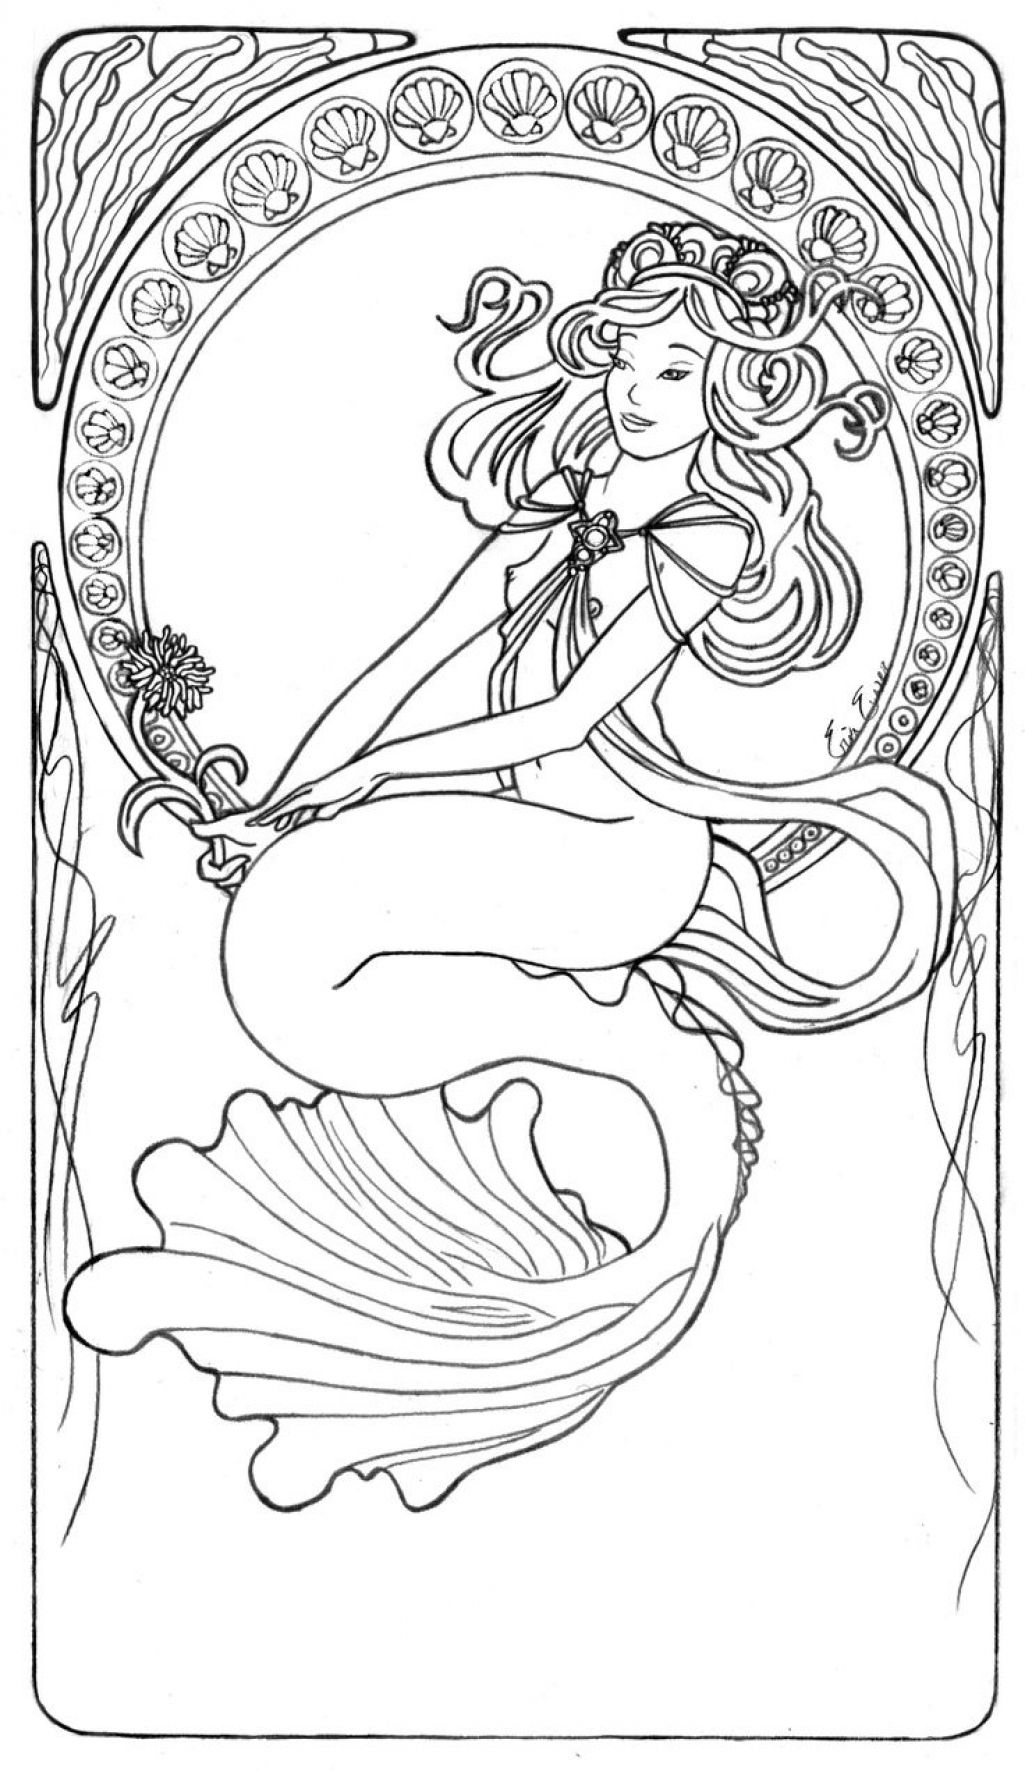 Free Coloring Pages Printable For Adults Coloring Page Staying ...